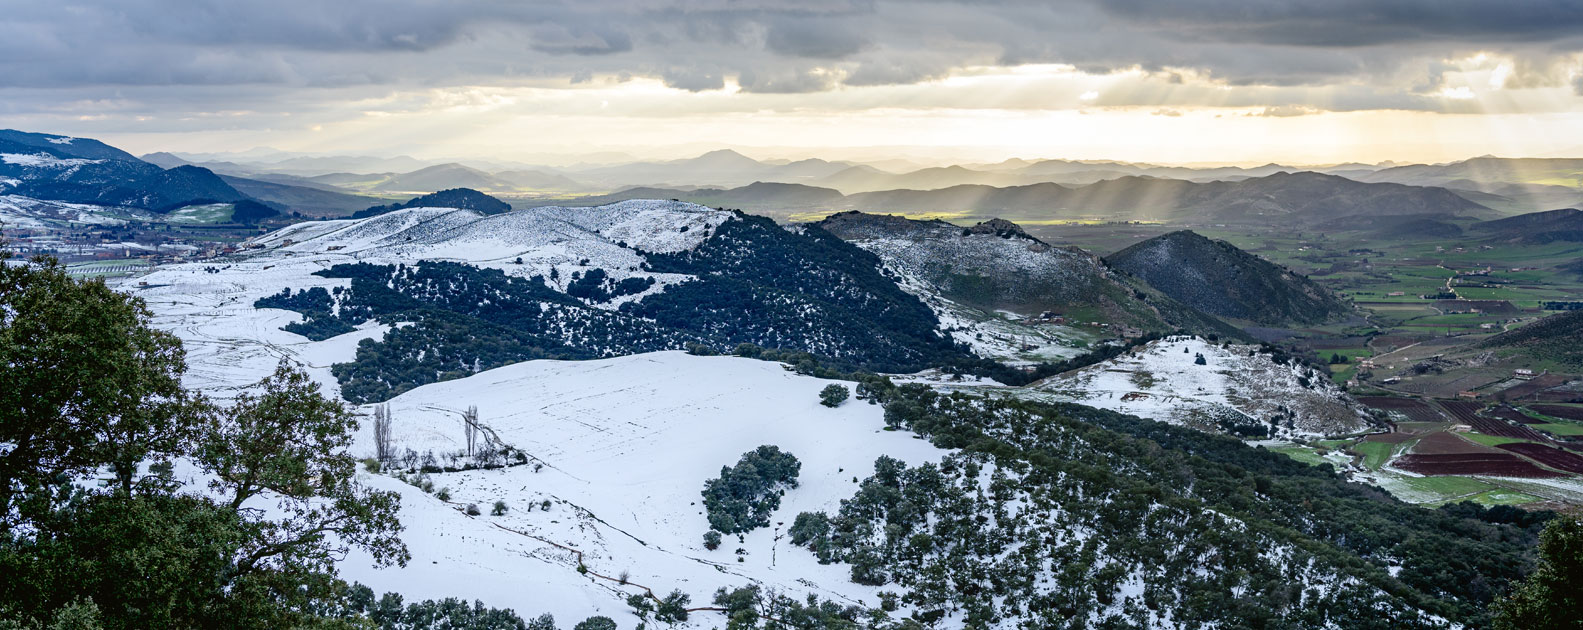 landscape-view-from-ifrane-morocco-over-snowy-mountains-luisa-puccini.jpg